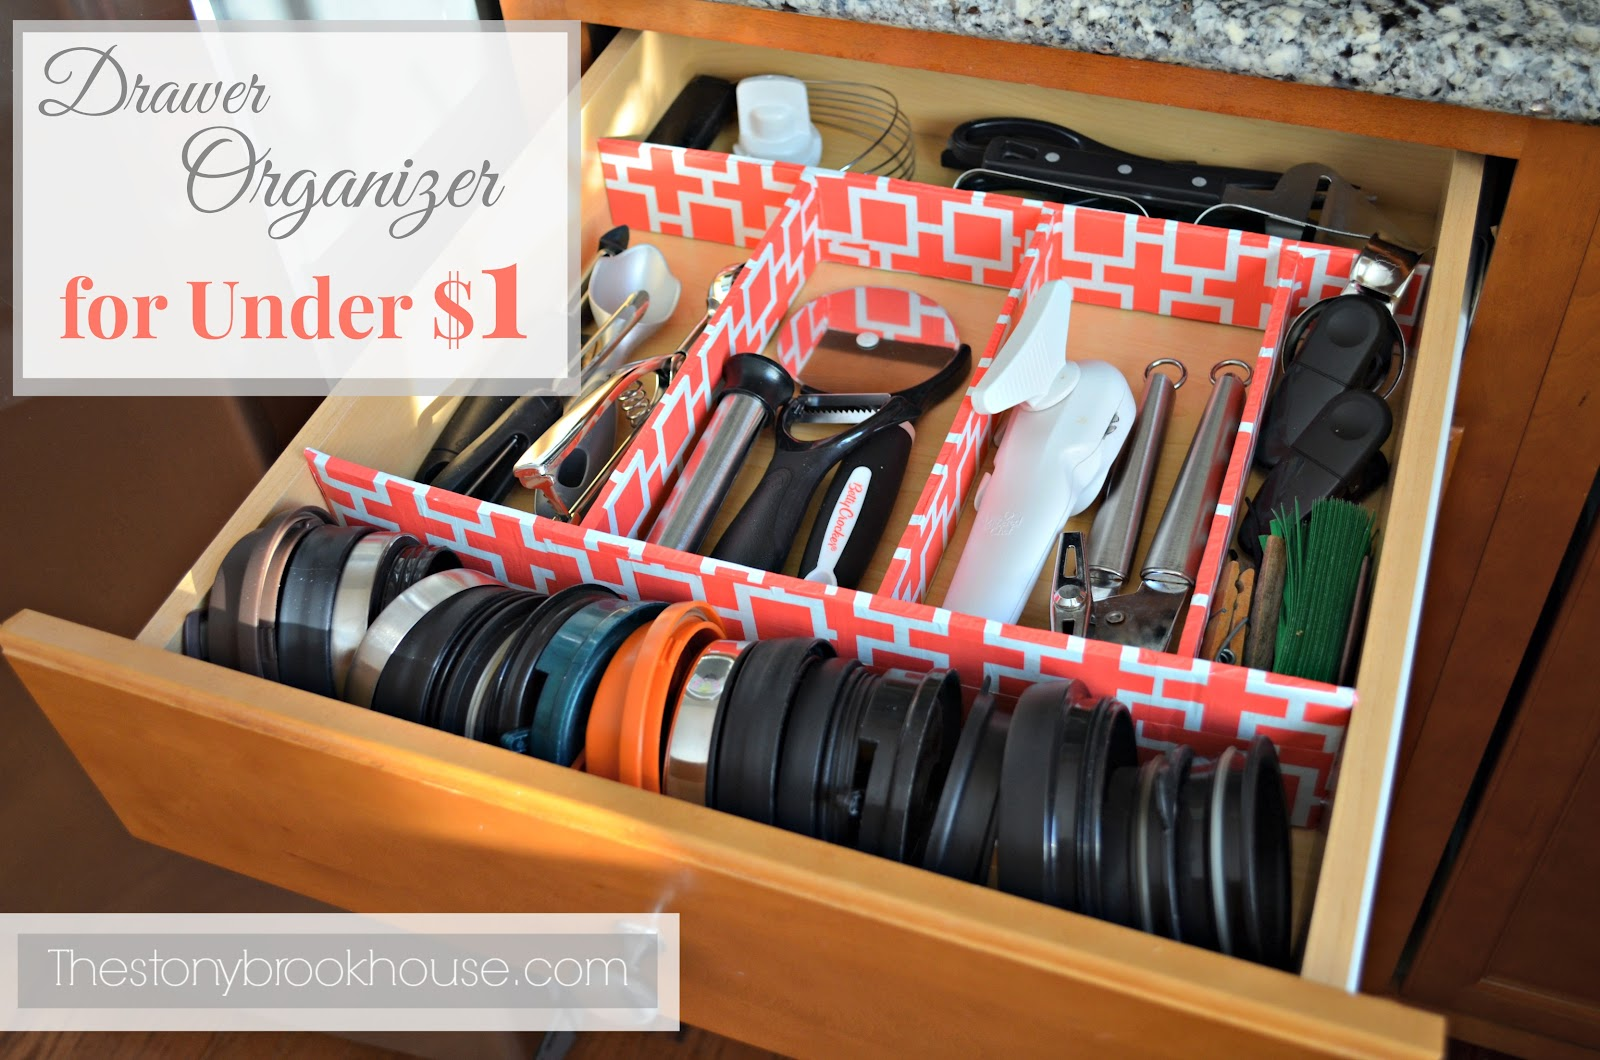 Kitchen Utensil Organizer Drawer Kitchen utensil drawer organizer for under 1 the stonybrook house kitchen drawer organizer for under 1 workwithnaturefo